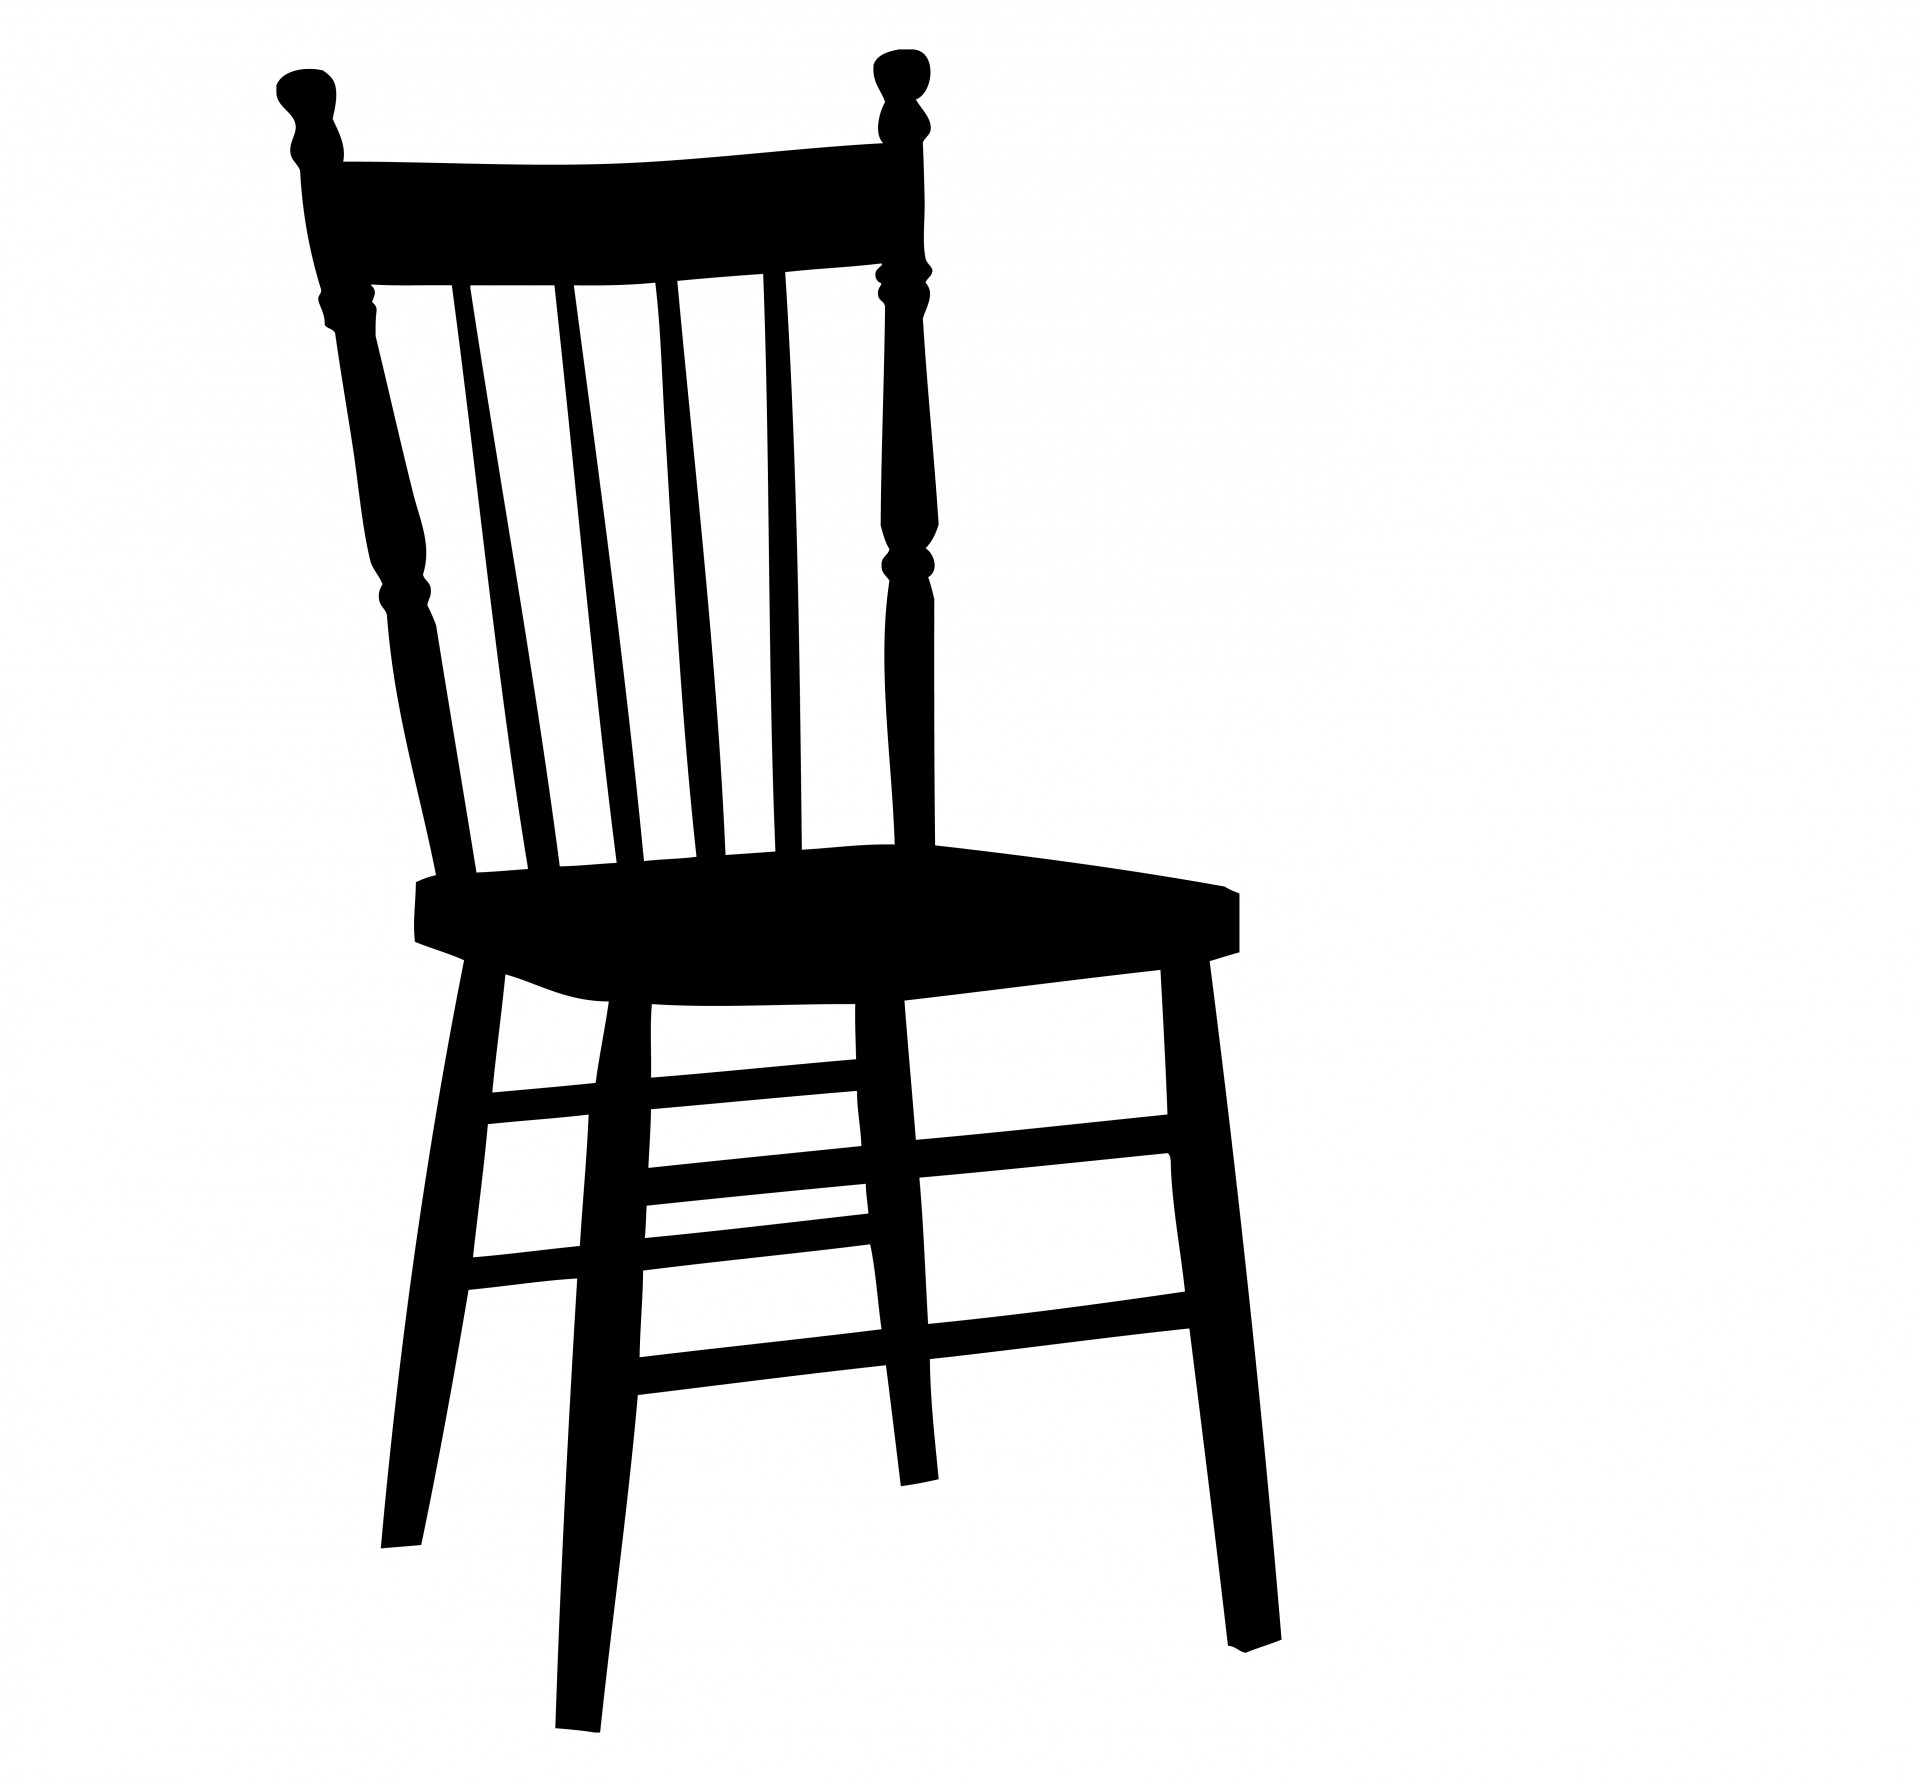 1920x1782 Chair Clipart Free Stock Photo